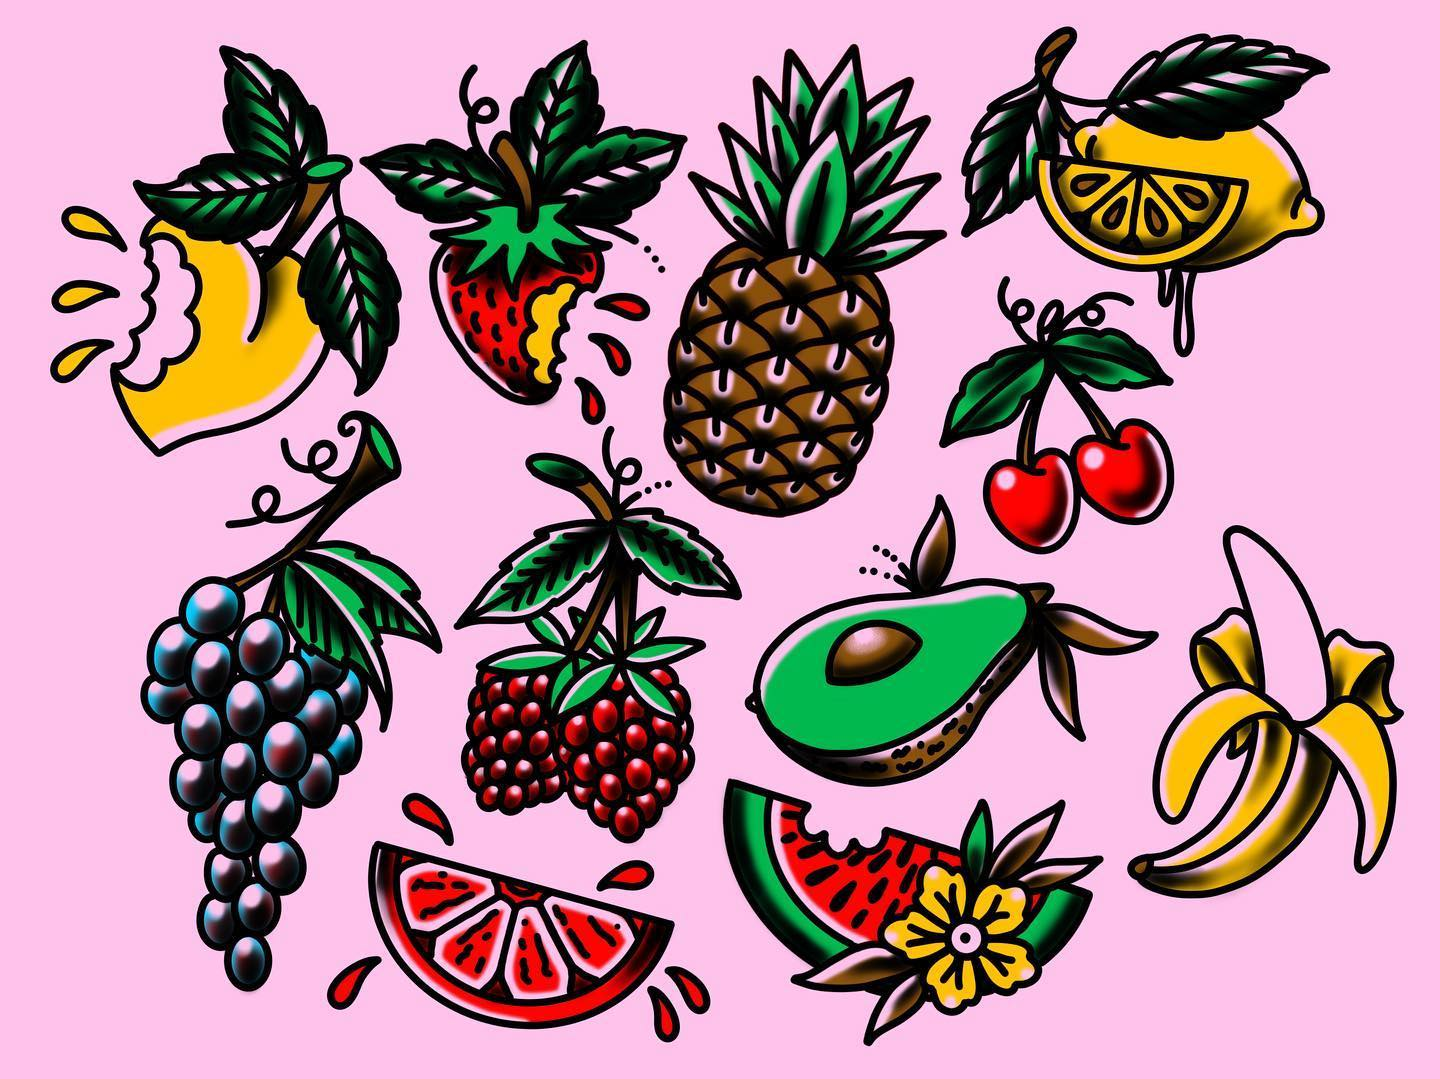 Come see me after lockdown @studioxiiigallery to help keep corona away with AT LEAST ONE of your 5 a day- deals on all 5 🤷♂️hope you're all still sane out there see u all in a few for a fruit salad and maybe a tattoo. fruittattoo bananatattoo strawberrytattoo lemontattoo cherrytattoo avacadotattoo pineappletattoo bloodorangetattoo grapetattoo raspberrytattoo peachtattoo watermelon tattooflash tattoodesign tattooart traditionaltattoos tradtattoos traditionaltattooing edinburgh scotland edinburghtattooer scottishtattooer studioxiii studioxiiigallery tattoosbyalanross alrosstattoo